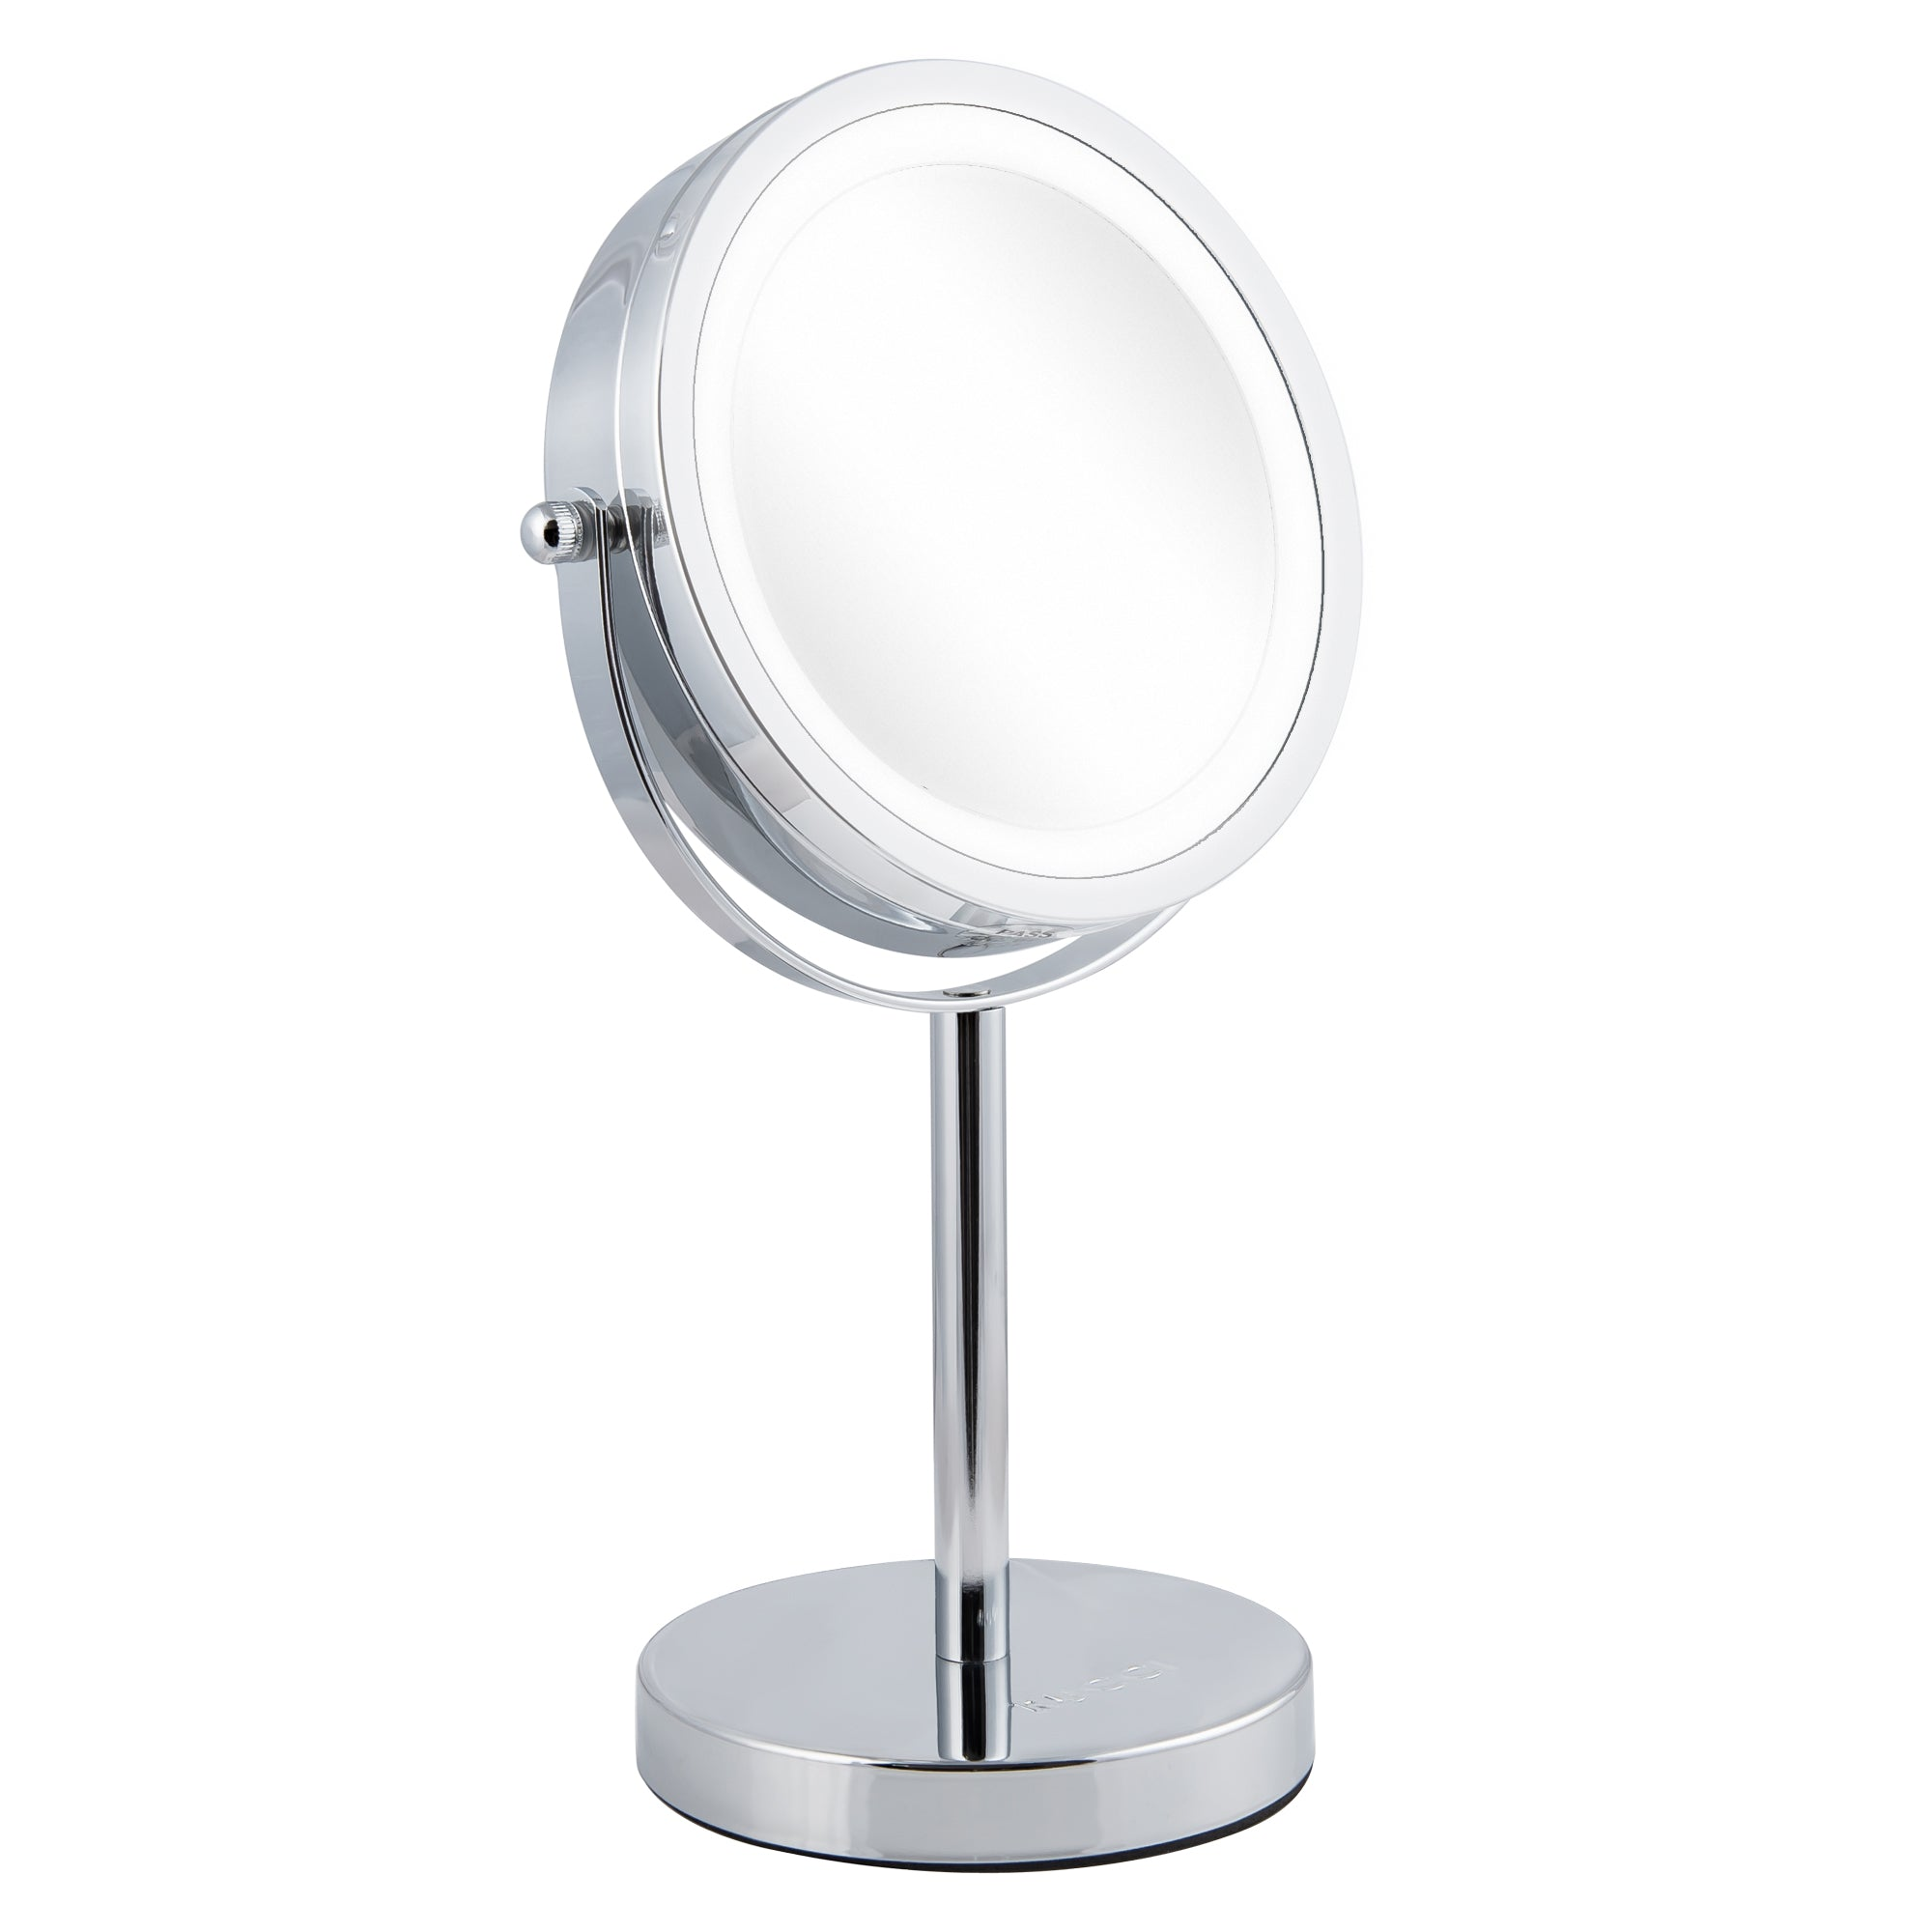 Lighted Table Top Makeup Glamour Mirror Oil-Rubbed Bronze Finish (M402)